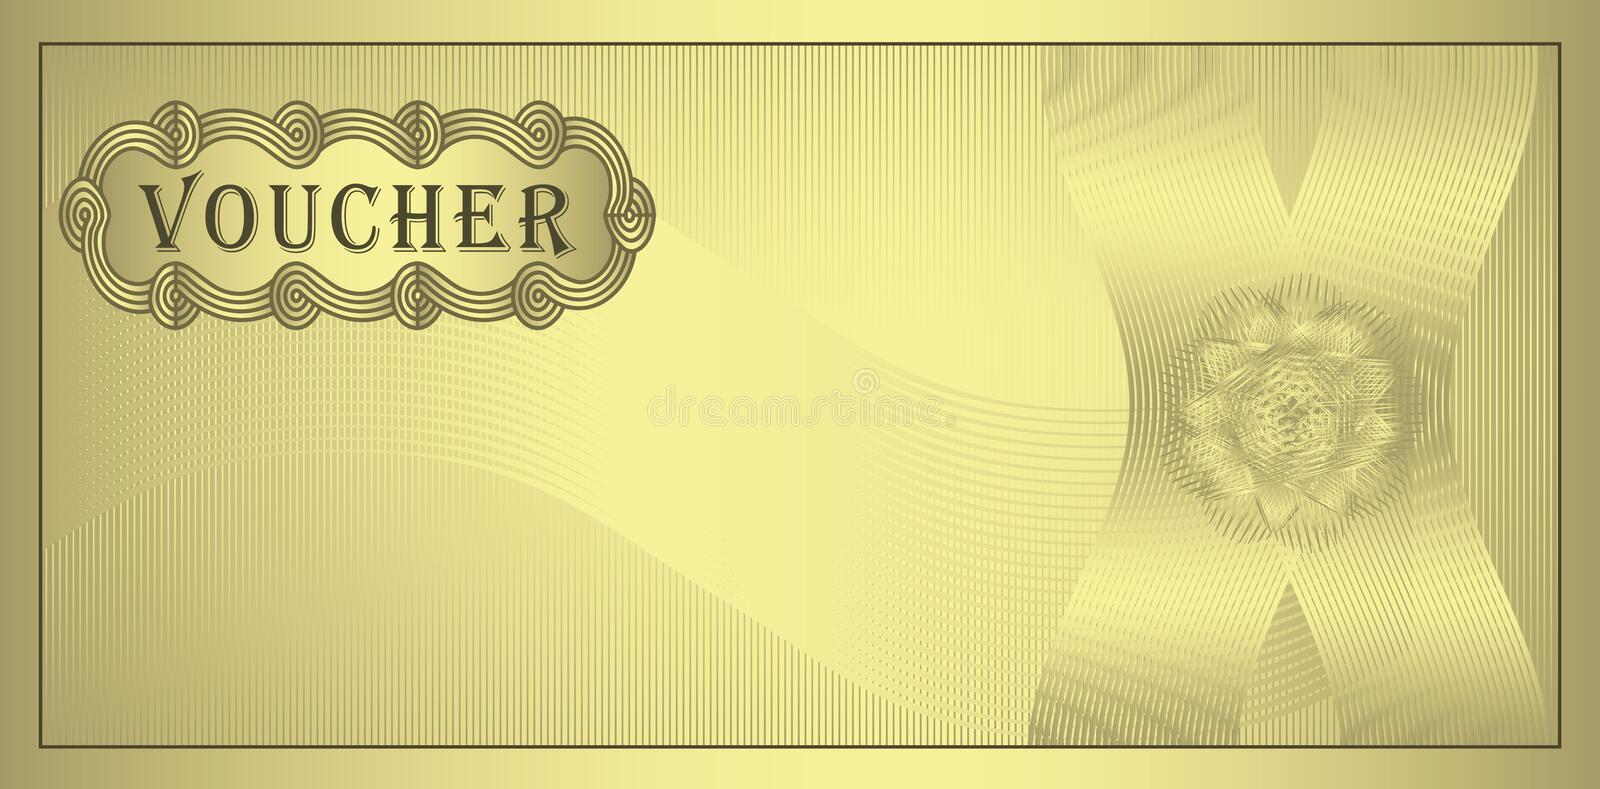 Voucher gold. Certificate coupon template